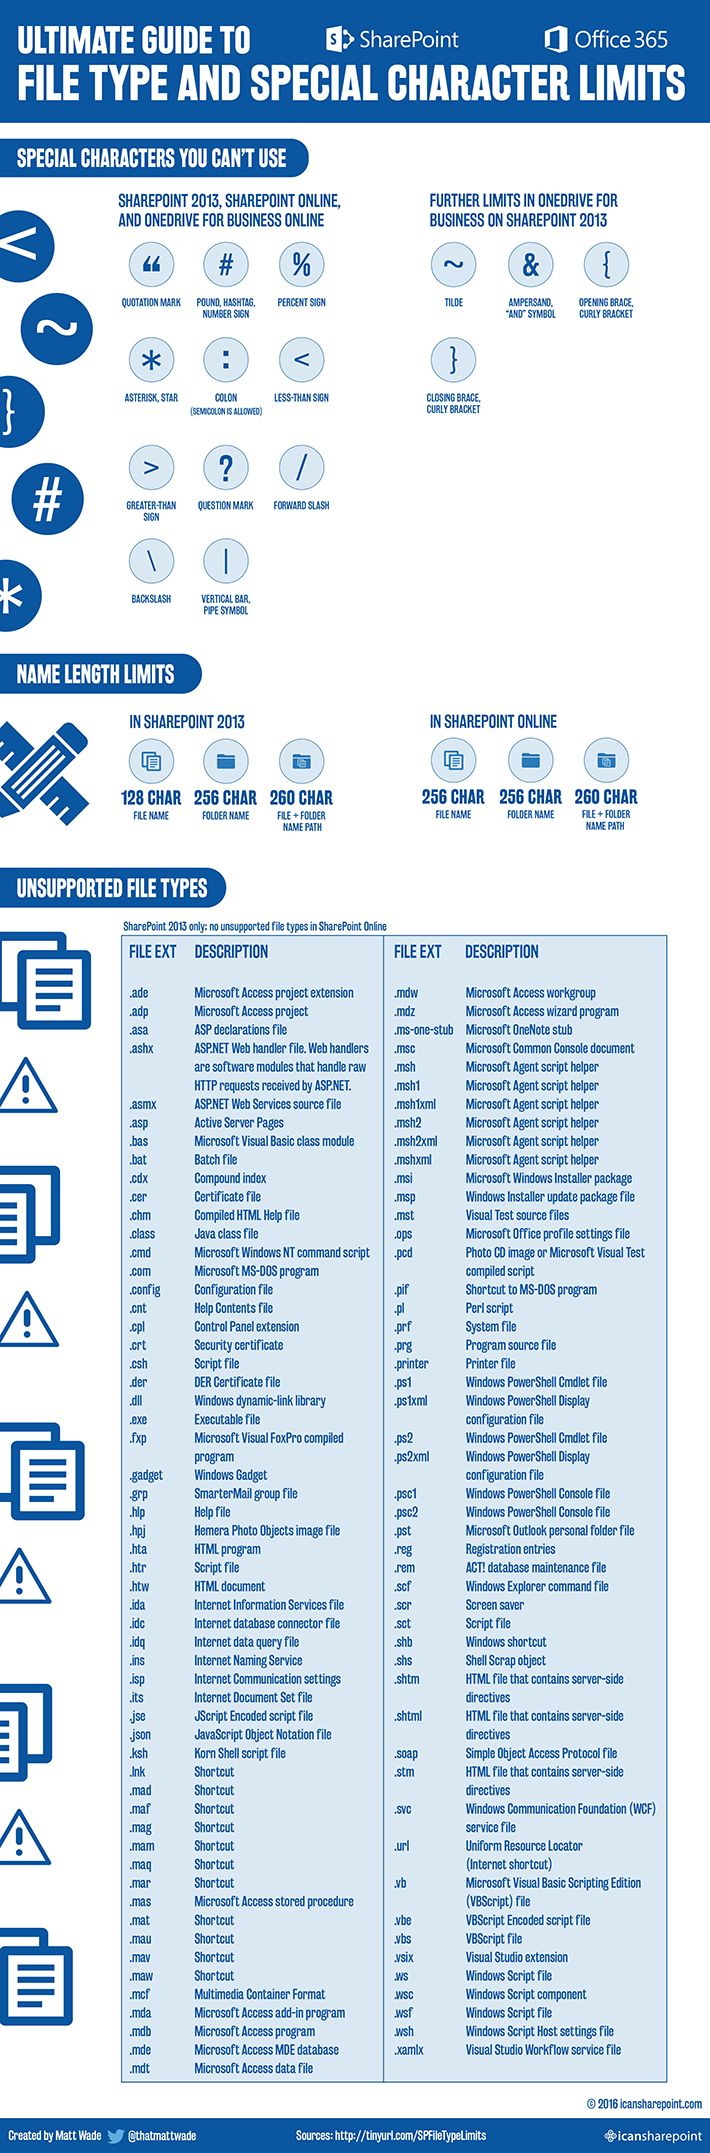 22 best sharepoint images on pinterest software development my recent post on file type limits in sharepoint got some love so similar to the size and usage limits infographic i put together another infographic for baditri Choice Image